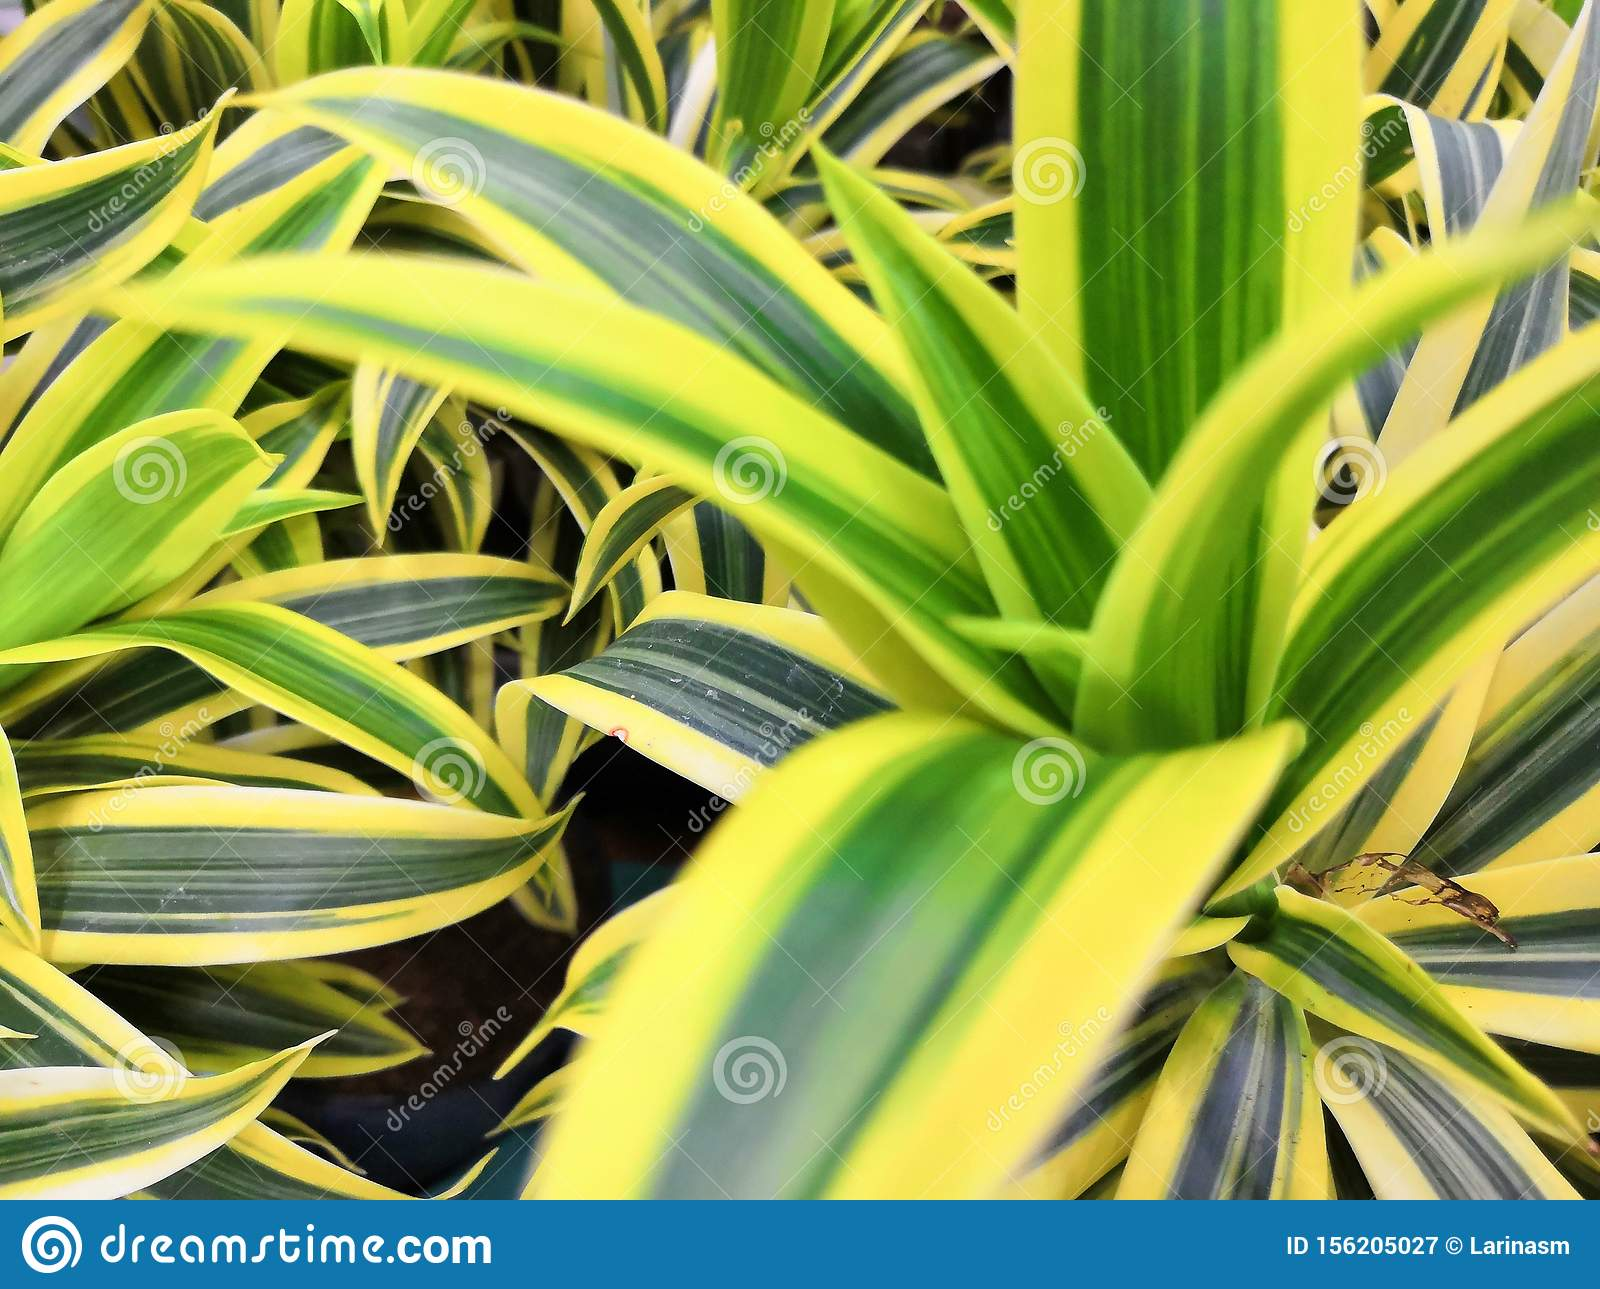 Variegated Green Yellow With White Beautiful Leaves Tropical Dracaena Plants Background Stock Image Image Of Leaves Indoor 156205027 Yellow twig dogwoods are perfect focals for a mixed bed and are stunning when planted in mass or in a unique hedge. https www dreamstime com variegated green yellow white beautiful leaves tropical dracaena plants background song india plant popular image156205027